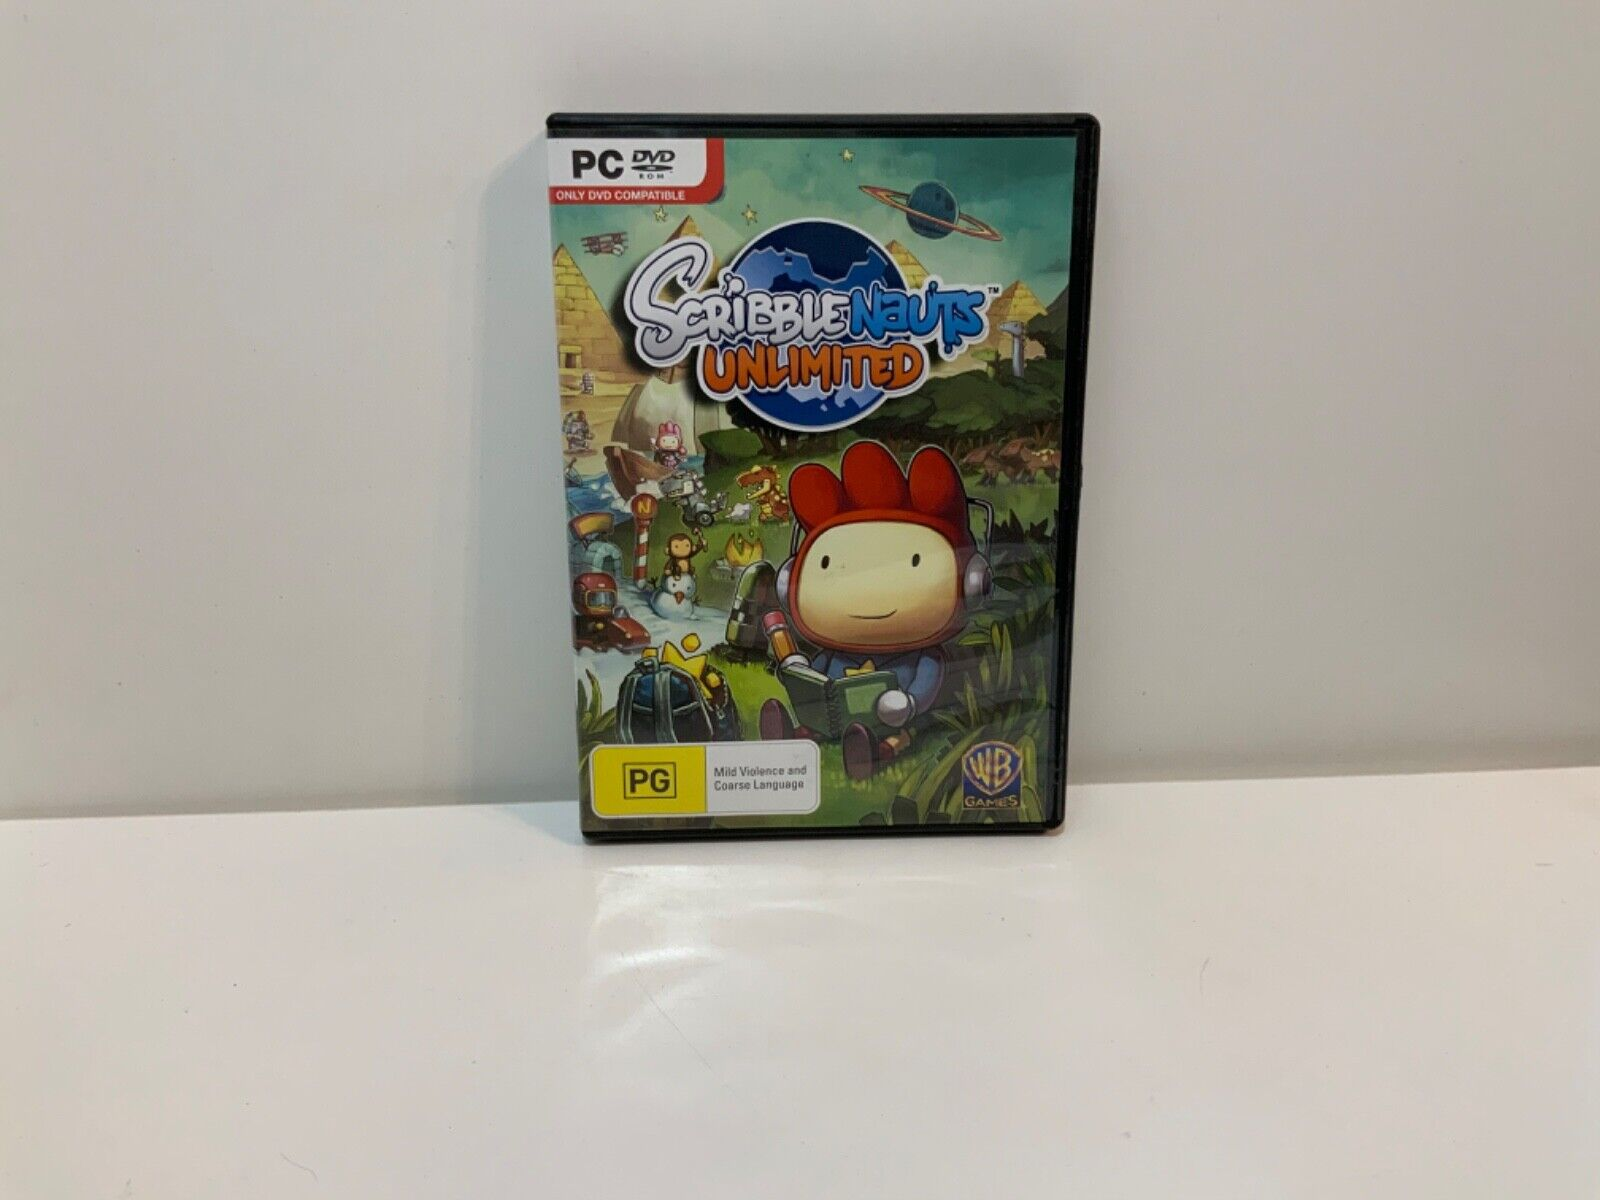 game computer - Scribblenauts: Unlimited - PC DVD CD Computer - Free Postage!